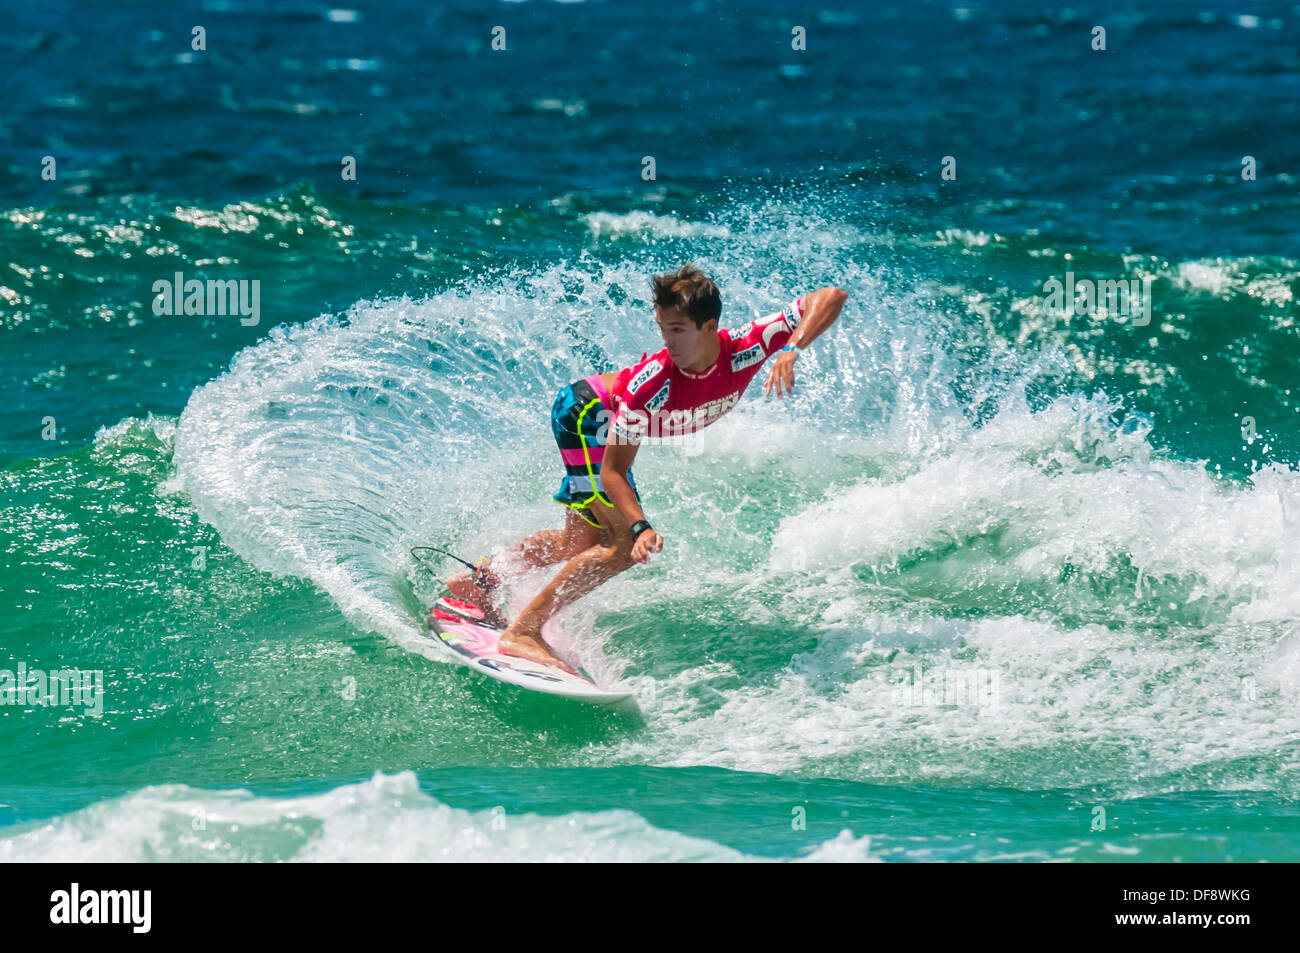 American pro surfer Evan Geiselman competing in the Australian Open of Surfing, Manly Beach, Sydney, New South Wales, Australia - Stock Image